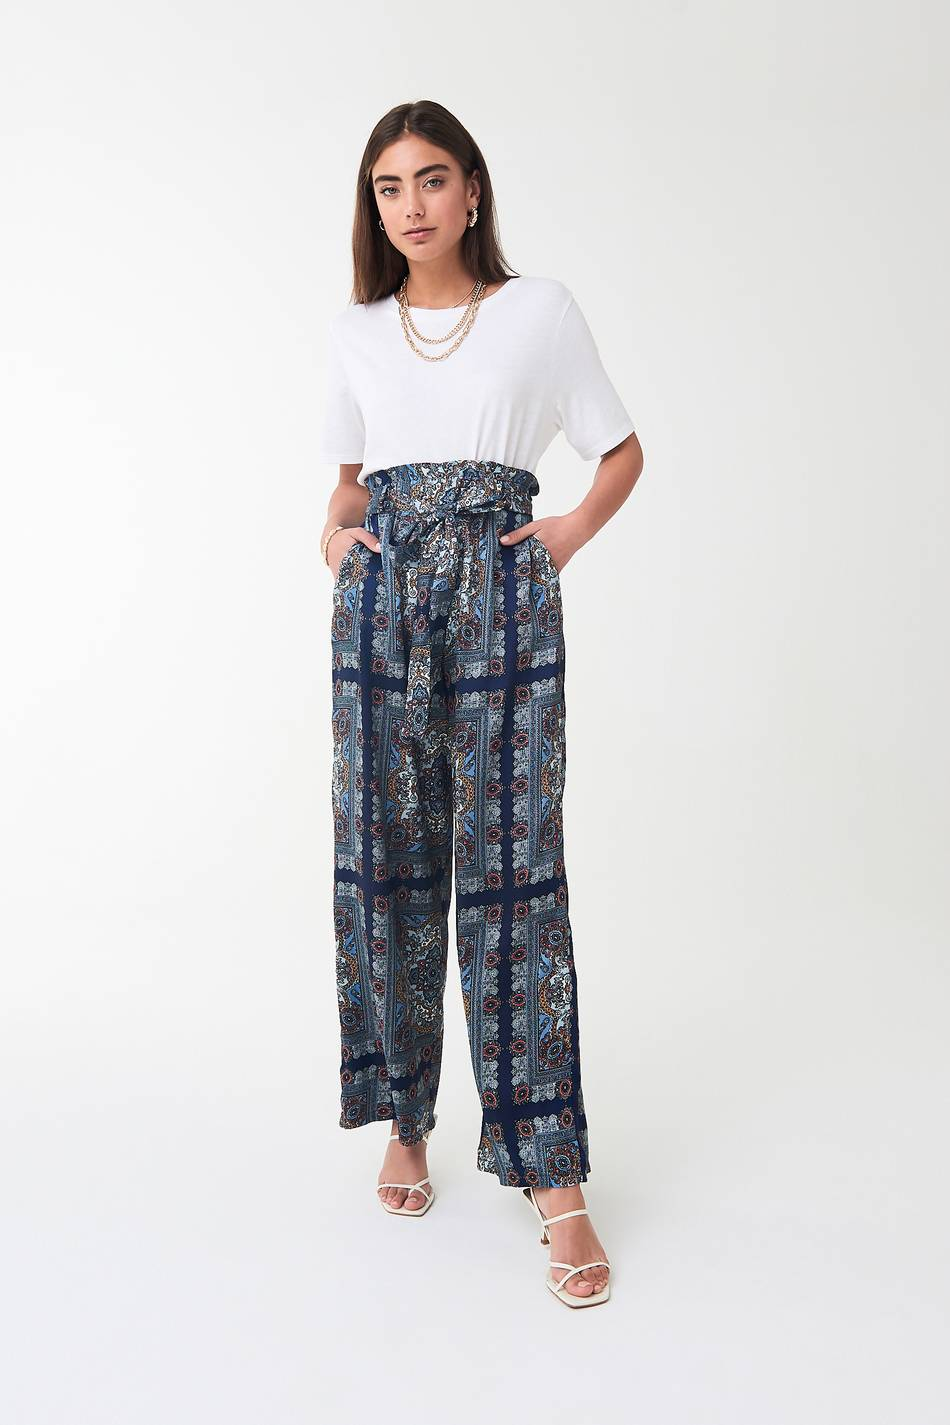 Gina Tricot Corinne trousers